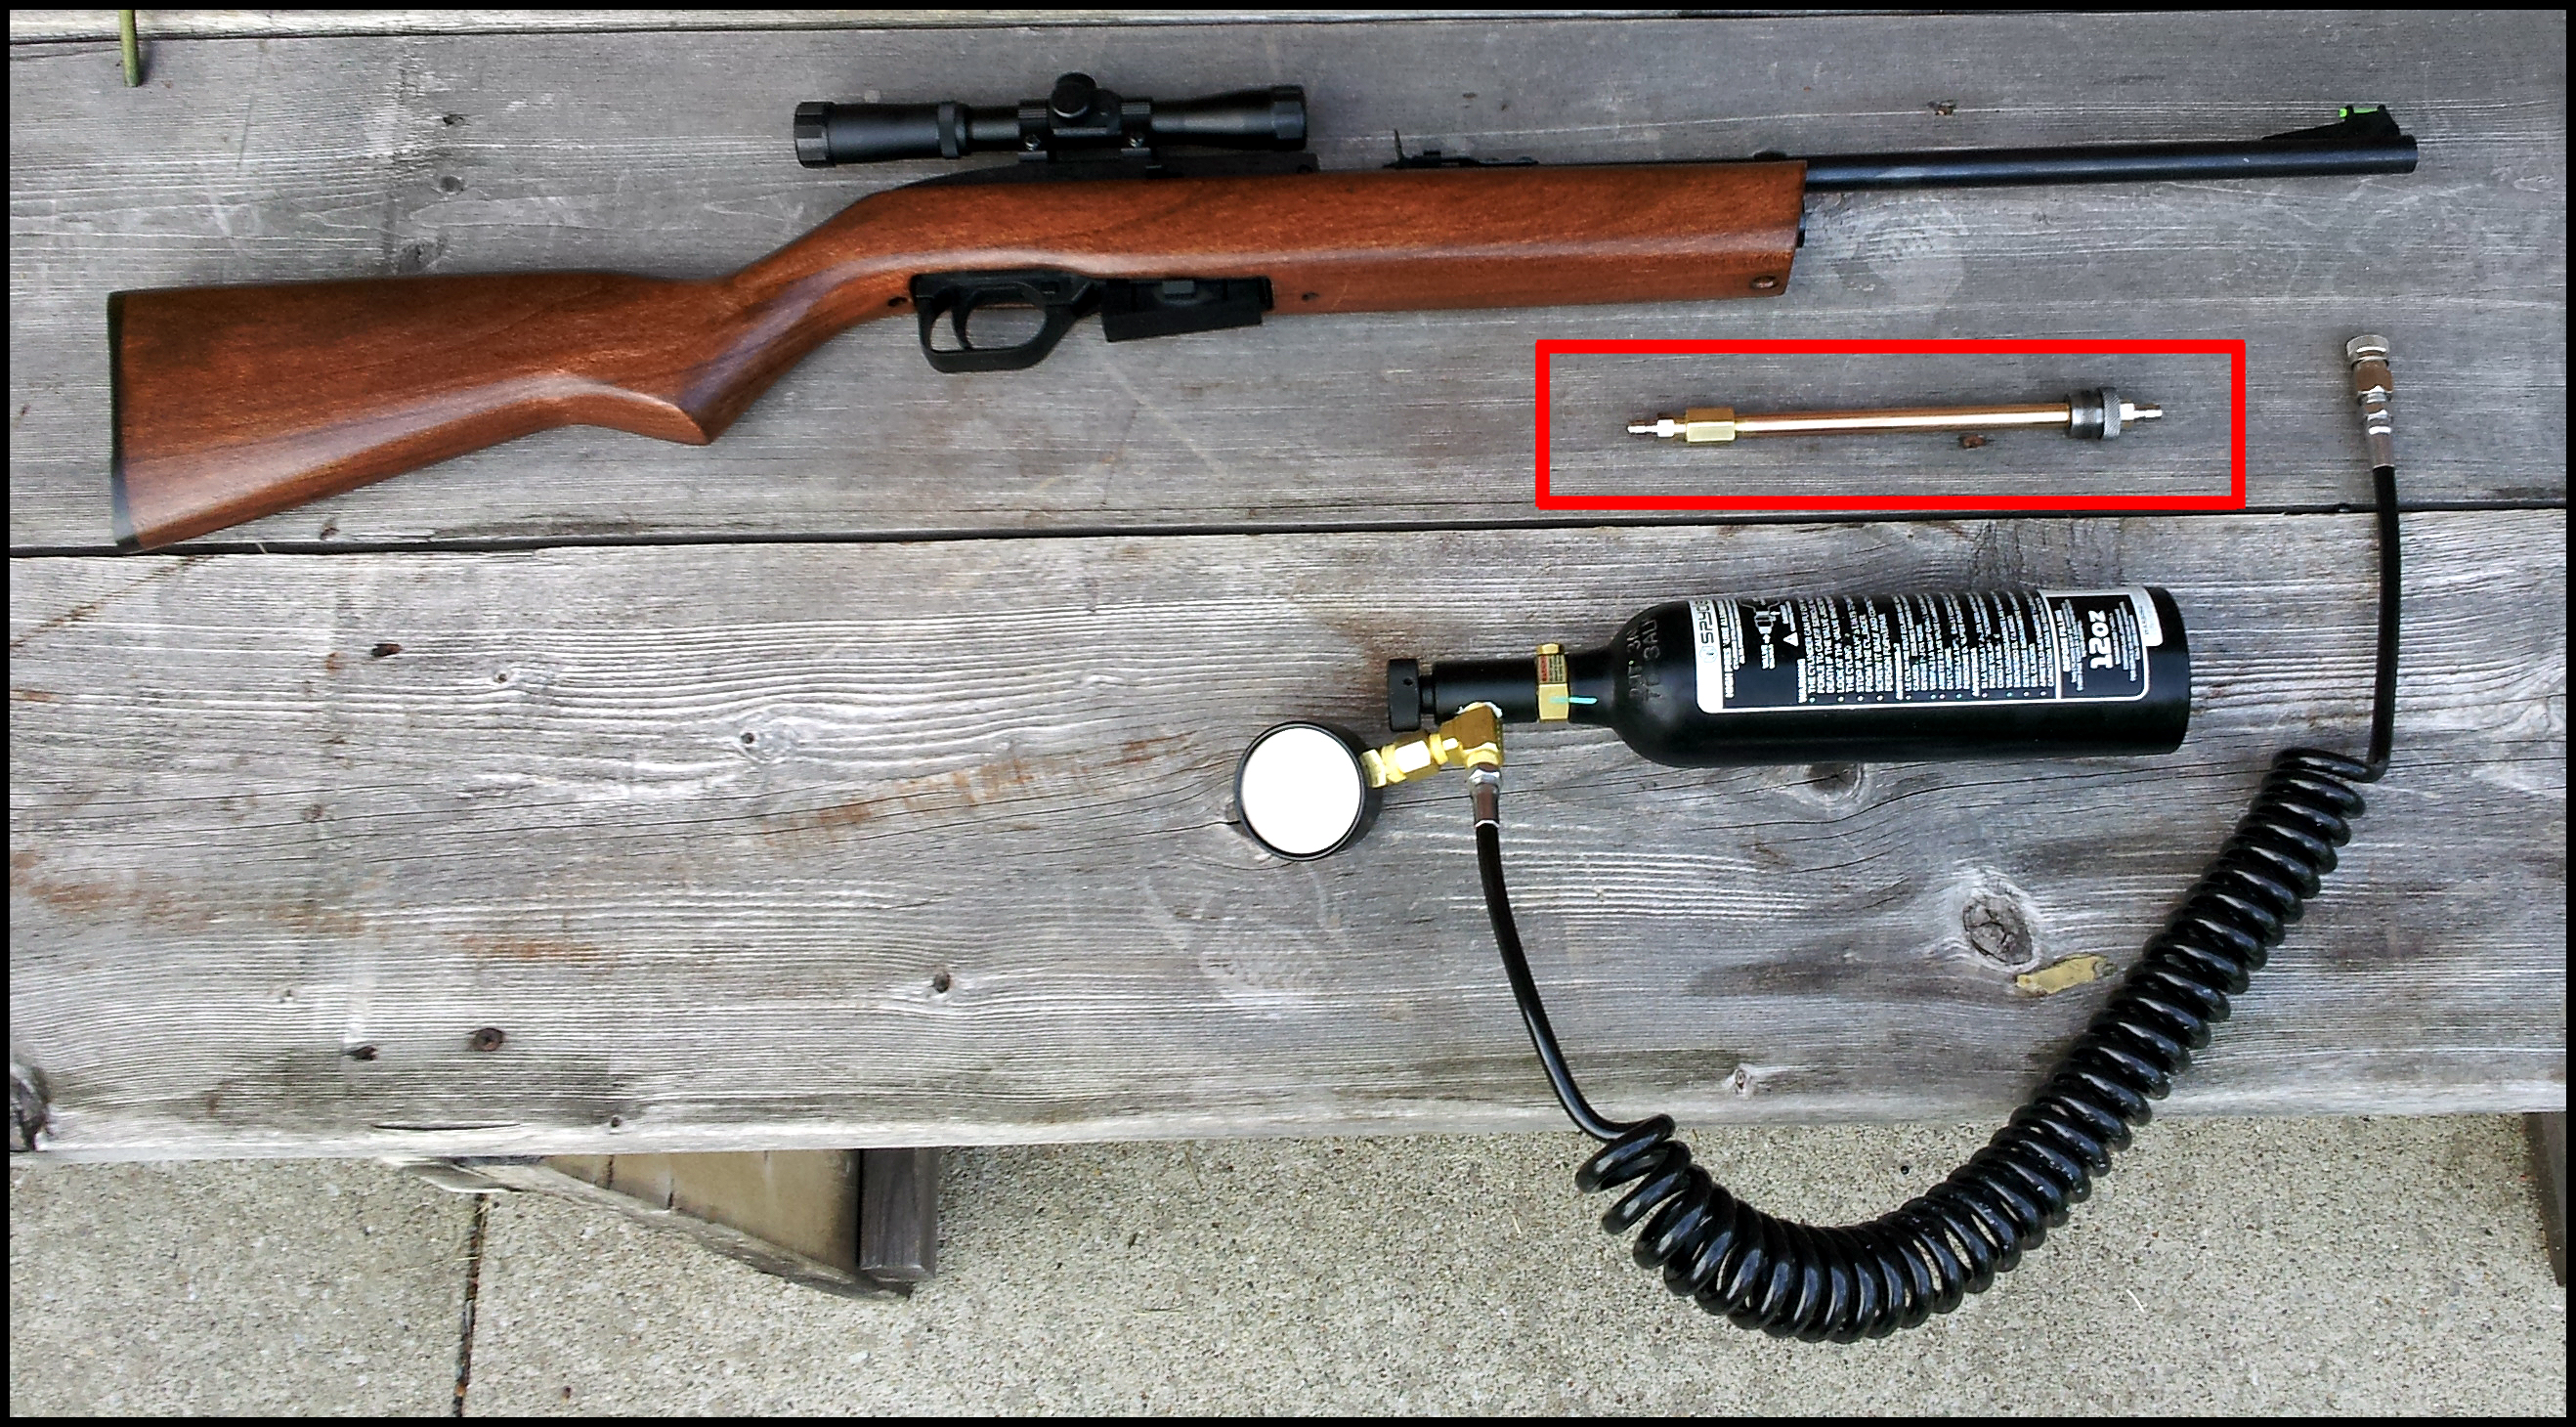 Bulk Fill on Crosman 1077 - How to Strap Down Bottle? - Airguns & Guns Forum